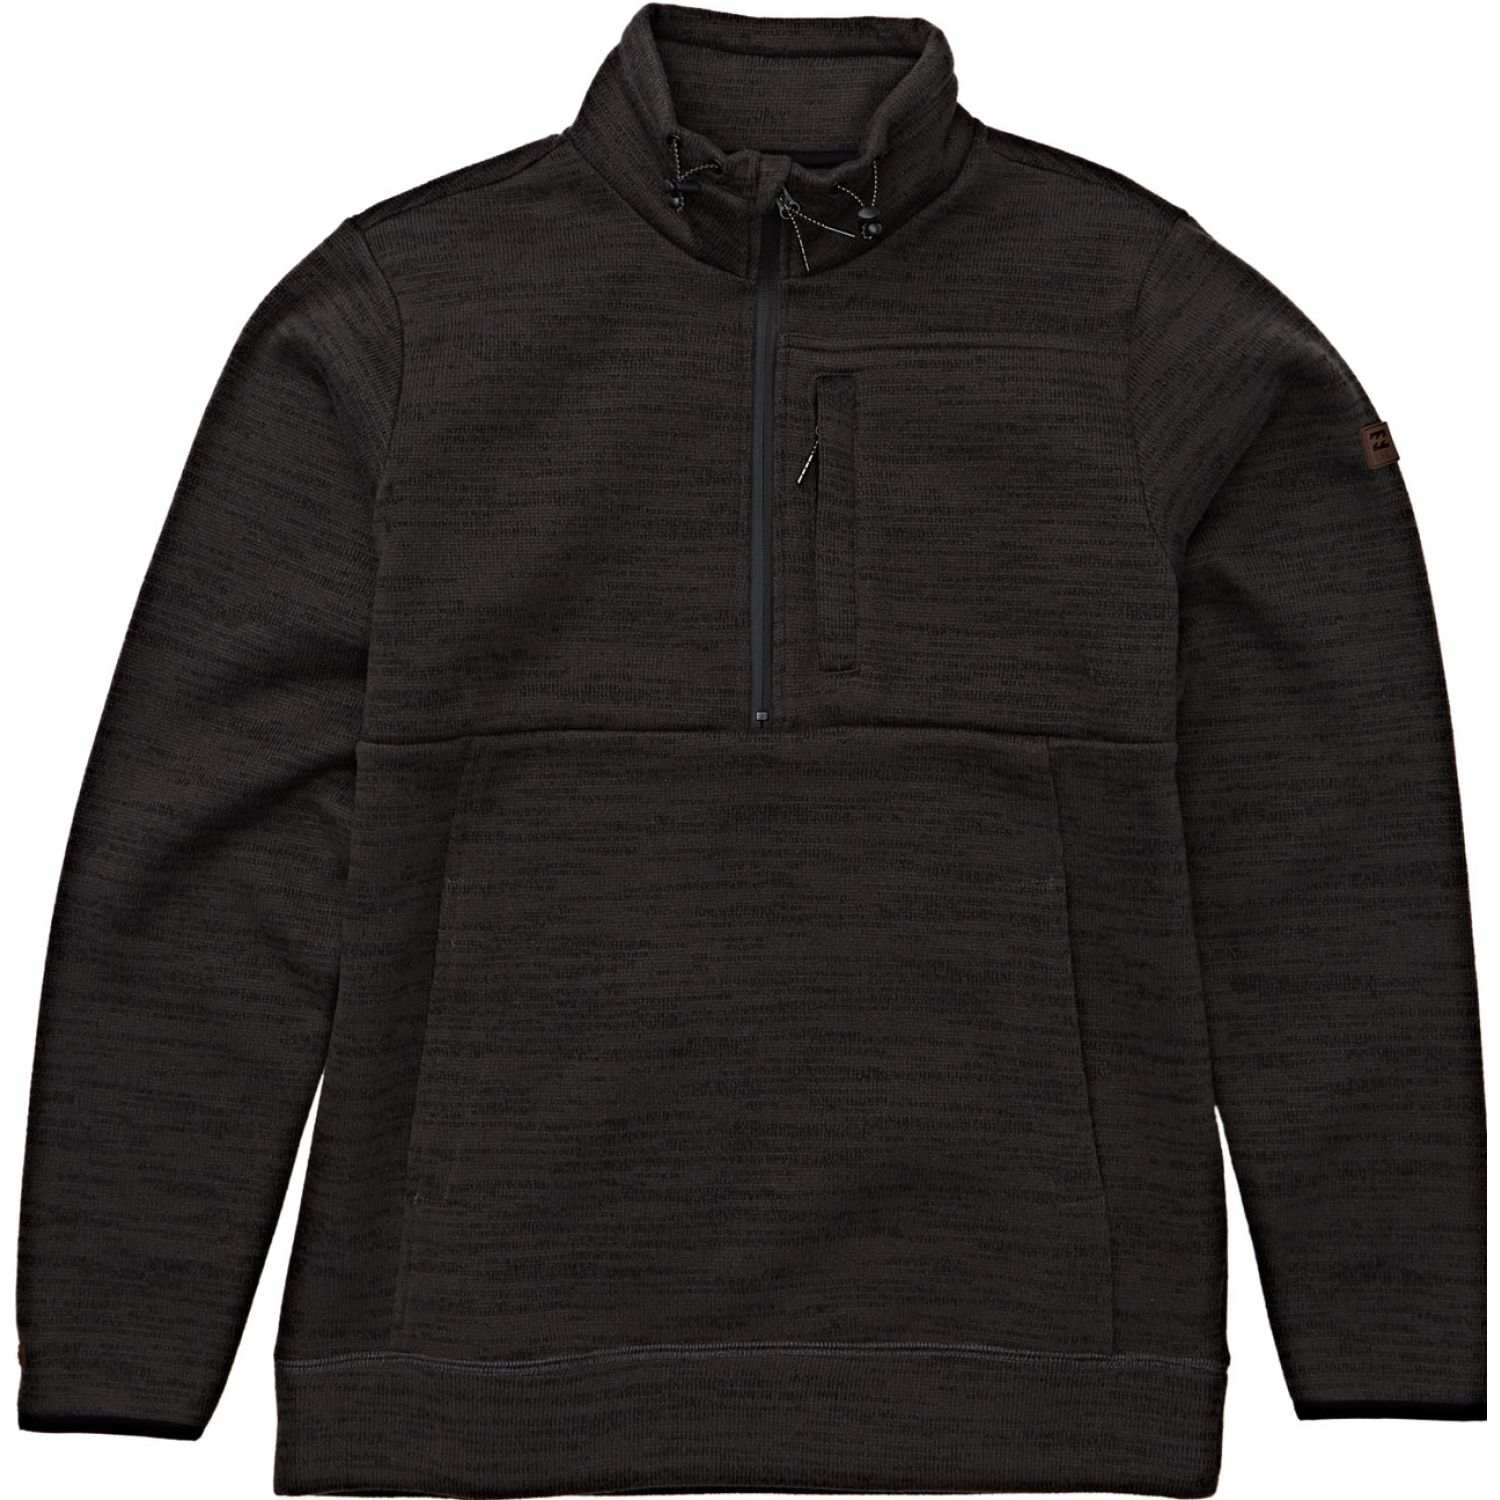 Billabong BOUNDARY MOCK HALF Z Marron Hoodies y Sweaters Fashion